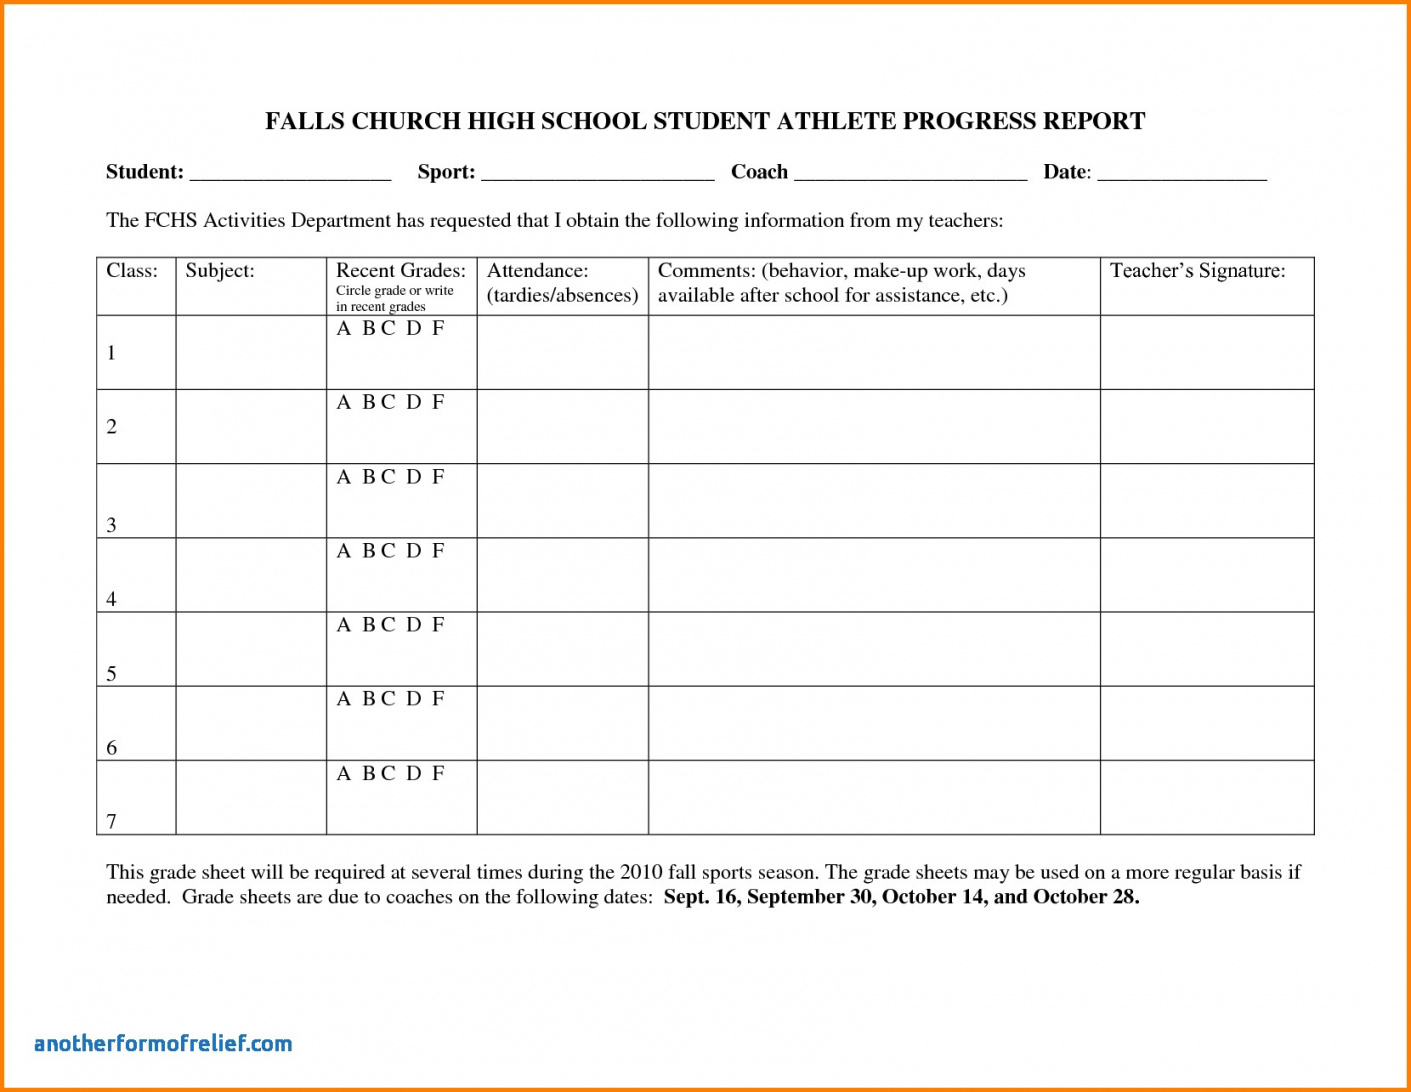 Weekly Accomplishment Report Template - Atlantaauctionco Inside Weekly Accomplishment Report Template